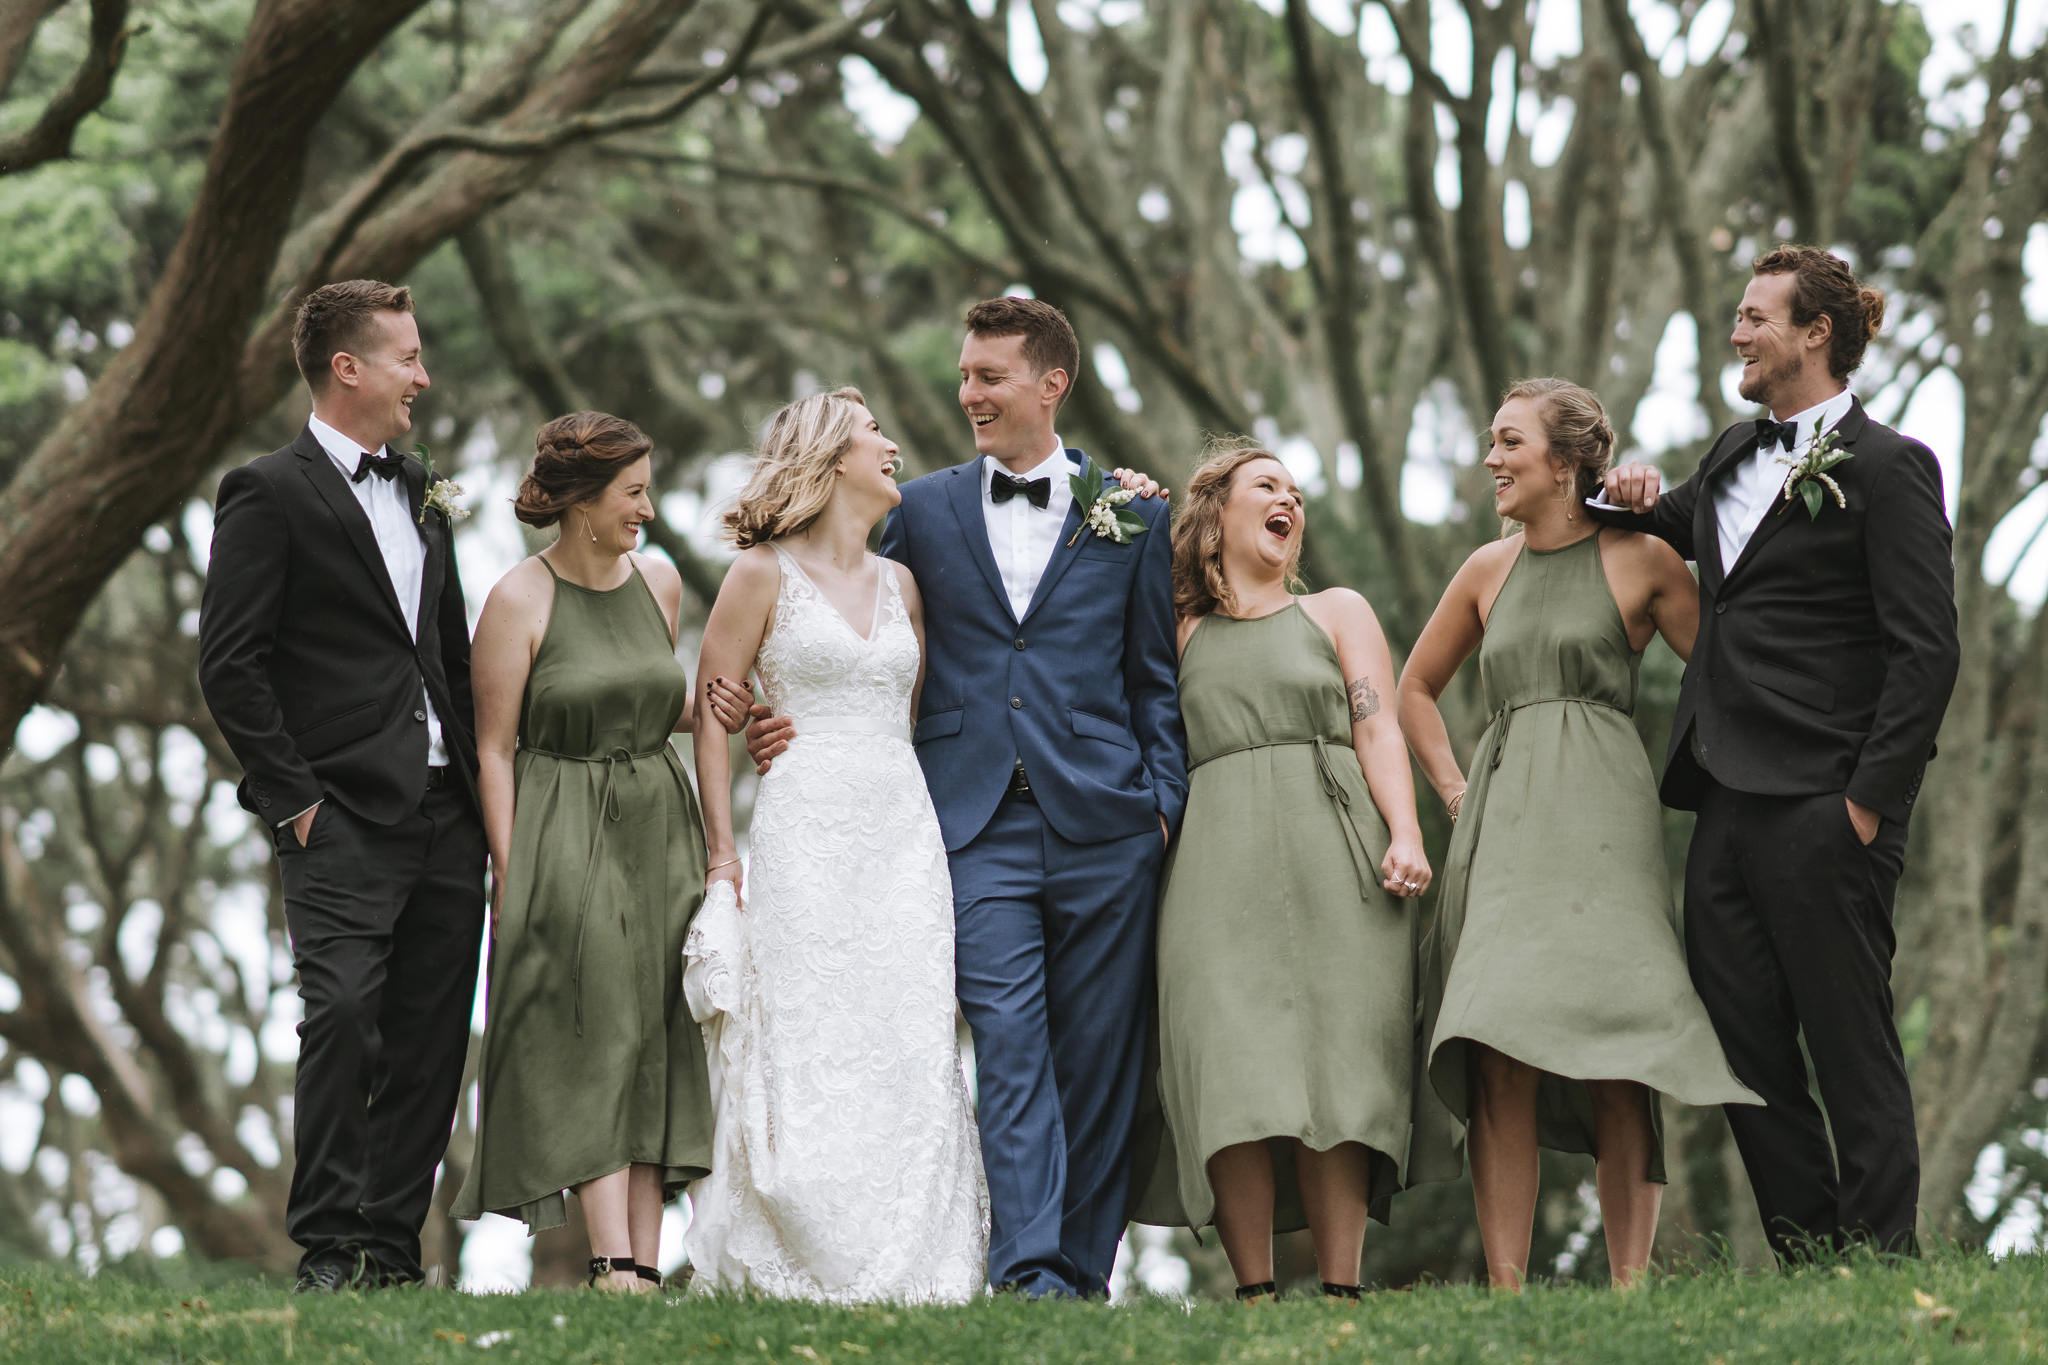 newfound-s-a-tauranga-new-zealand-wedding-photography-228